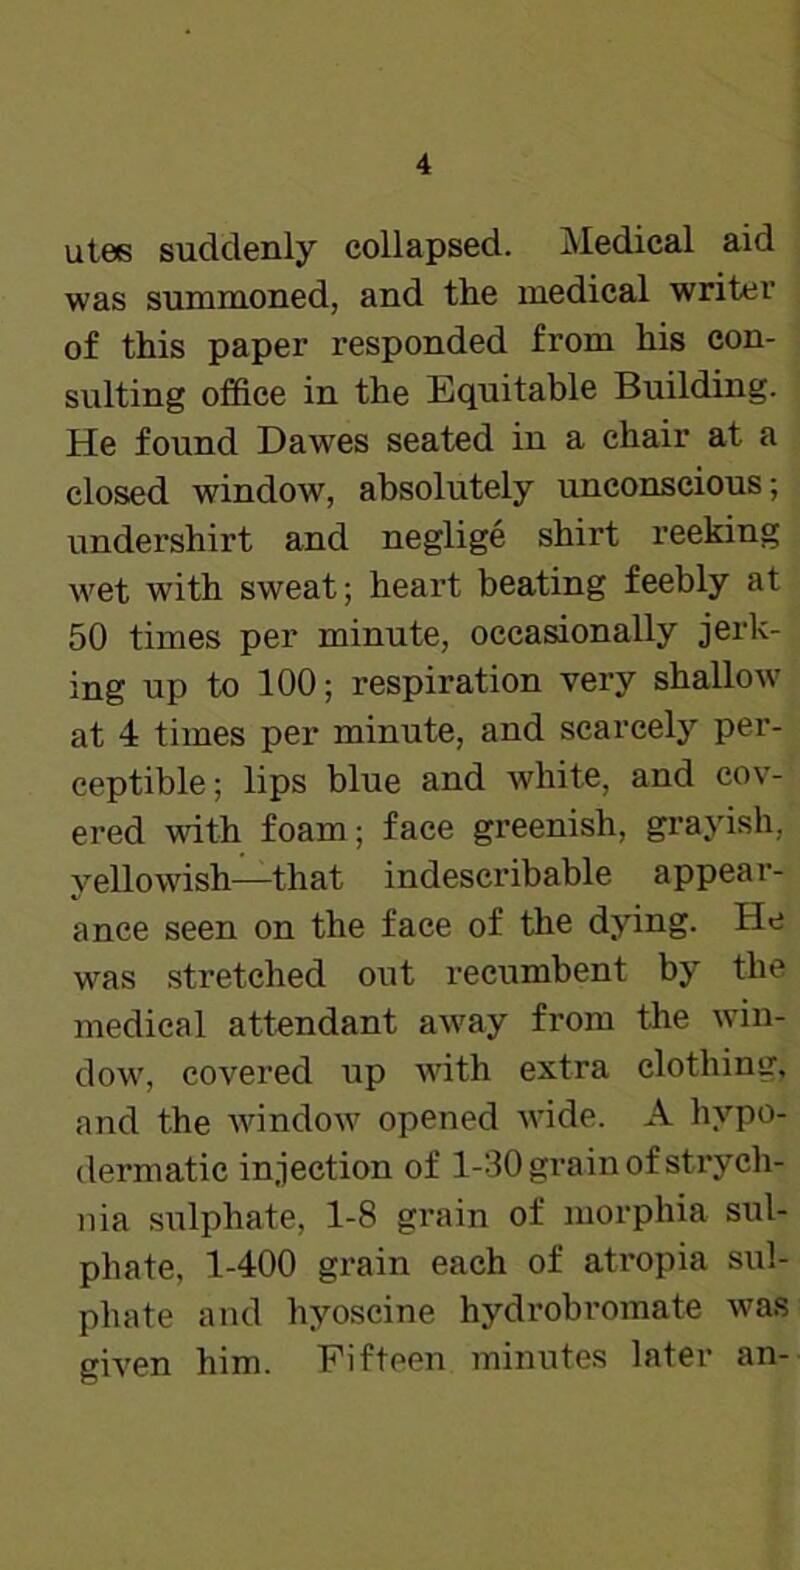 utes suddenly collapsed. Medical aid was summoned, and the medical writer of this paper responded from his con- sulting office in the Equitable Building. He found Dawes seated in a chair at a closed window, absolutely unconscious; undershirt and neglige shirt reeking wet with sweat; heart beating feebly at 50 times per minute, occasionally jerk- ing up to 100; respiration very shallow at 4 times per minute, and scarcely per- ceptible; lips blue and white, and cov- ered with foam; face greenish, grayish, yellowish—that indescribable appear- ance seen on the face of the dying. He was stretched out recumbent by the medical attendant away from the win- dow, covered up with extra clothing, and the window opened wide. A hypo- dermatic injection of 1-30 grain of strych- nia sulphate, 1-8 grain of morphia sul- phate, 1-400 grain each of atropia sul- phate and hyoscine hydrobromate was given him. Fifteen minutes later an-